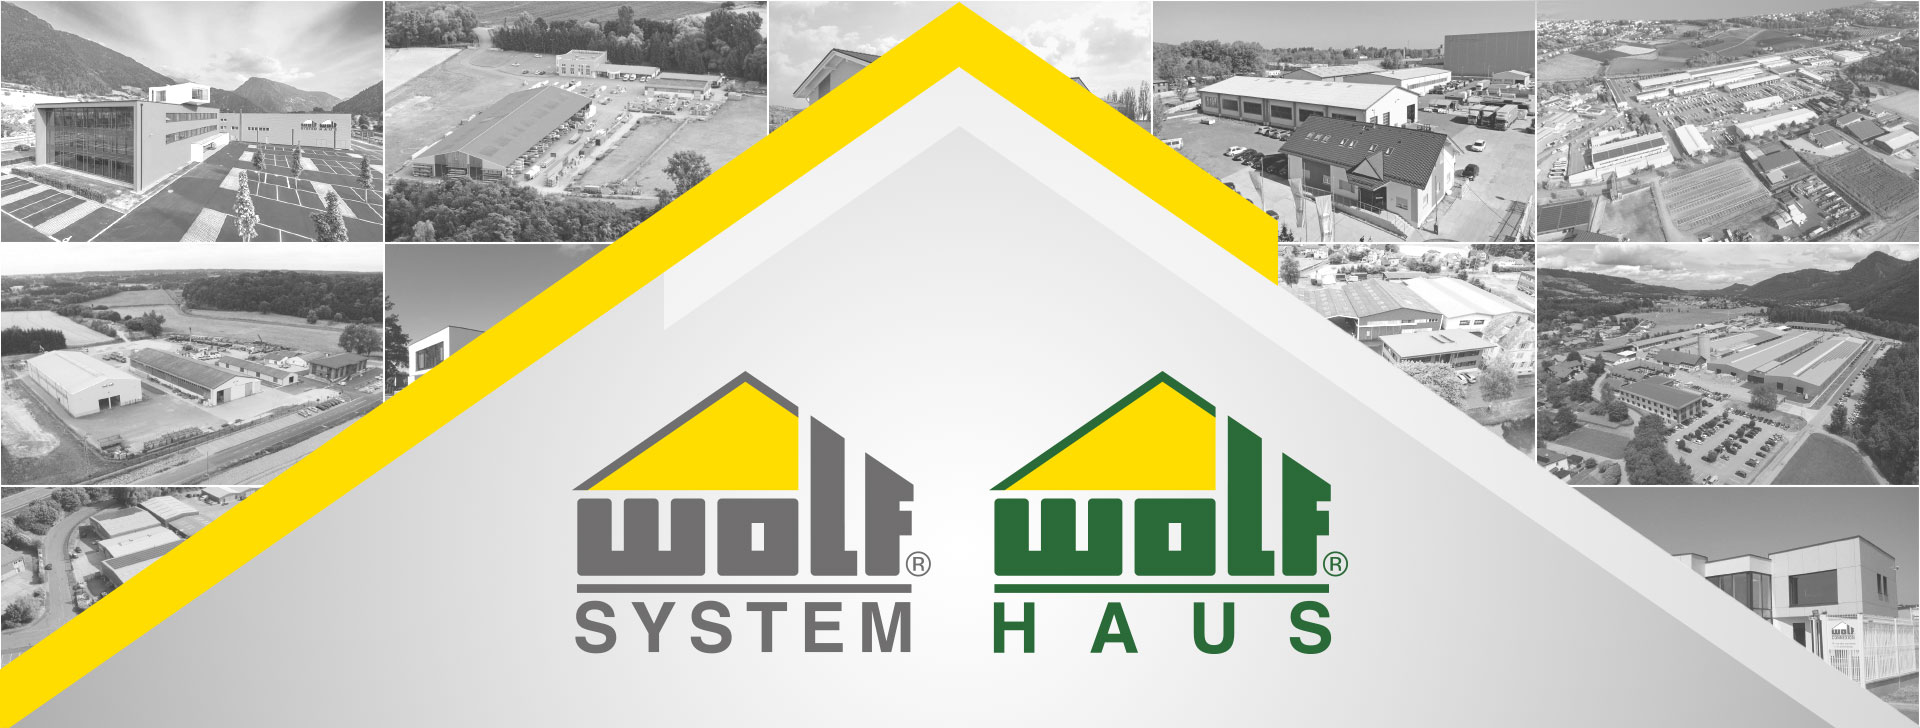 WOLF Group, Shed construction, Prefabricated houses, Concrete tanks